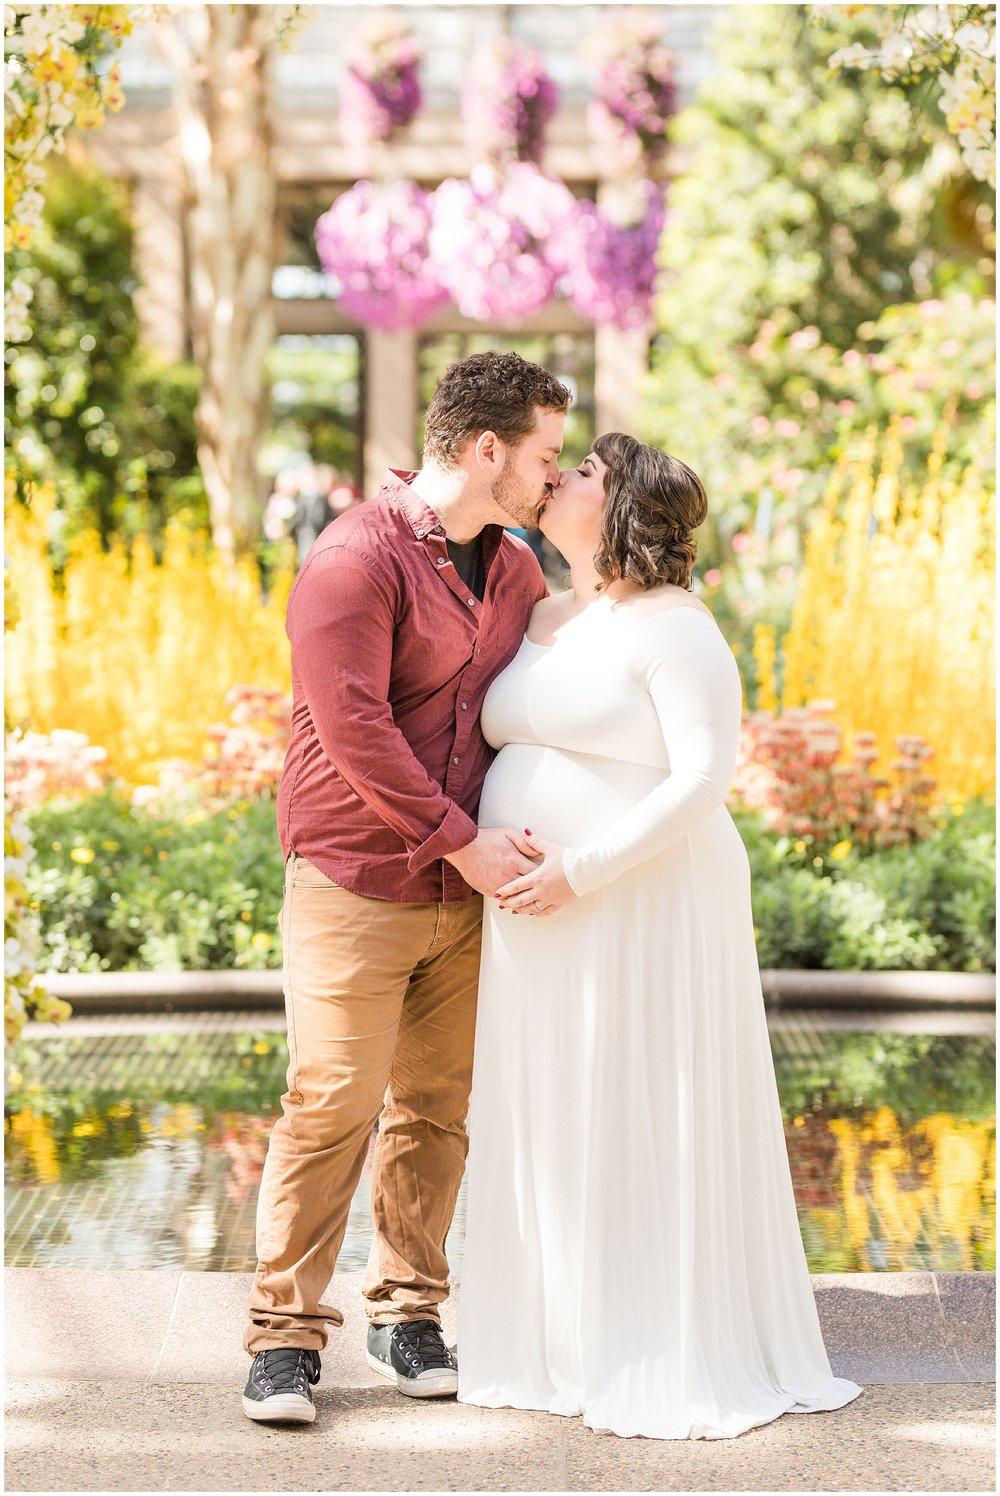 Longwood-gardens-maternity-photos-234.jpg